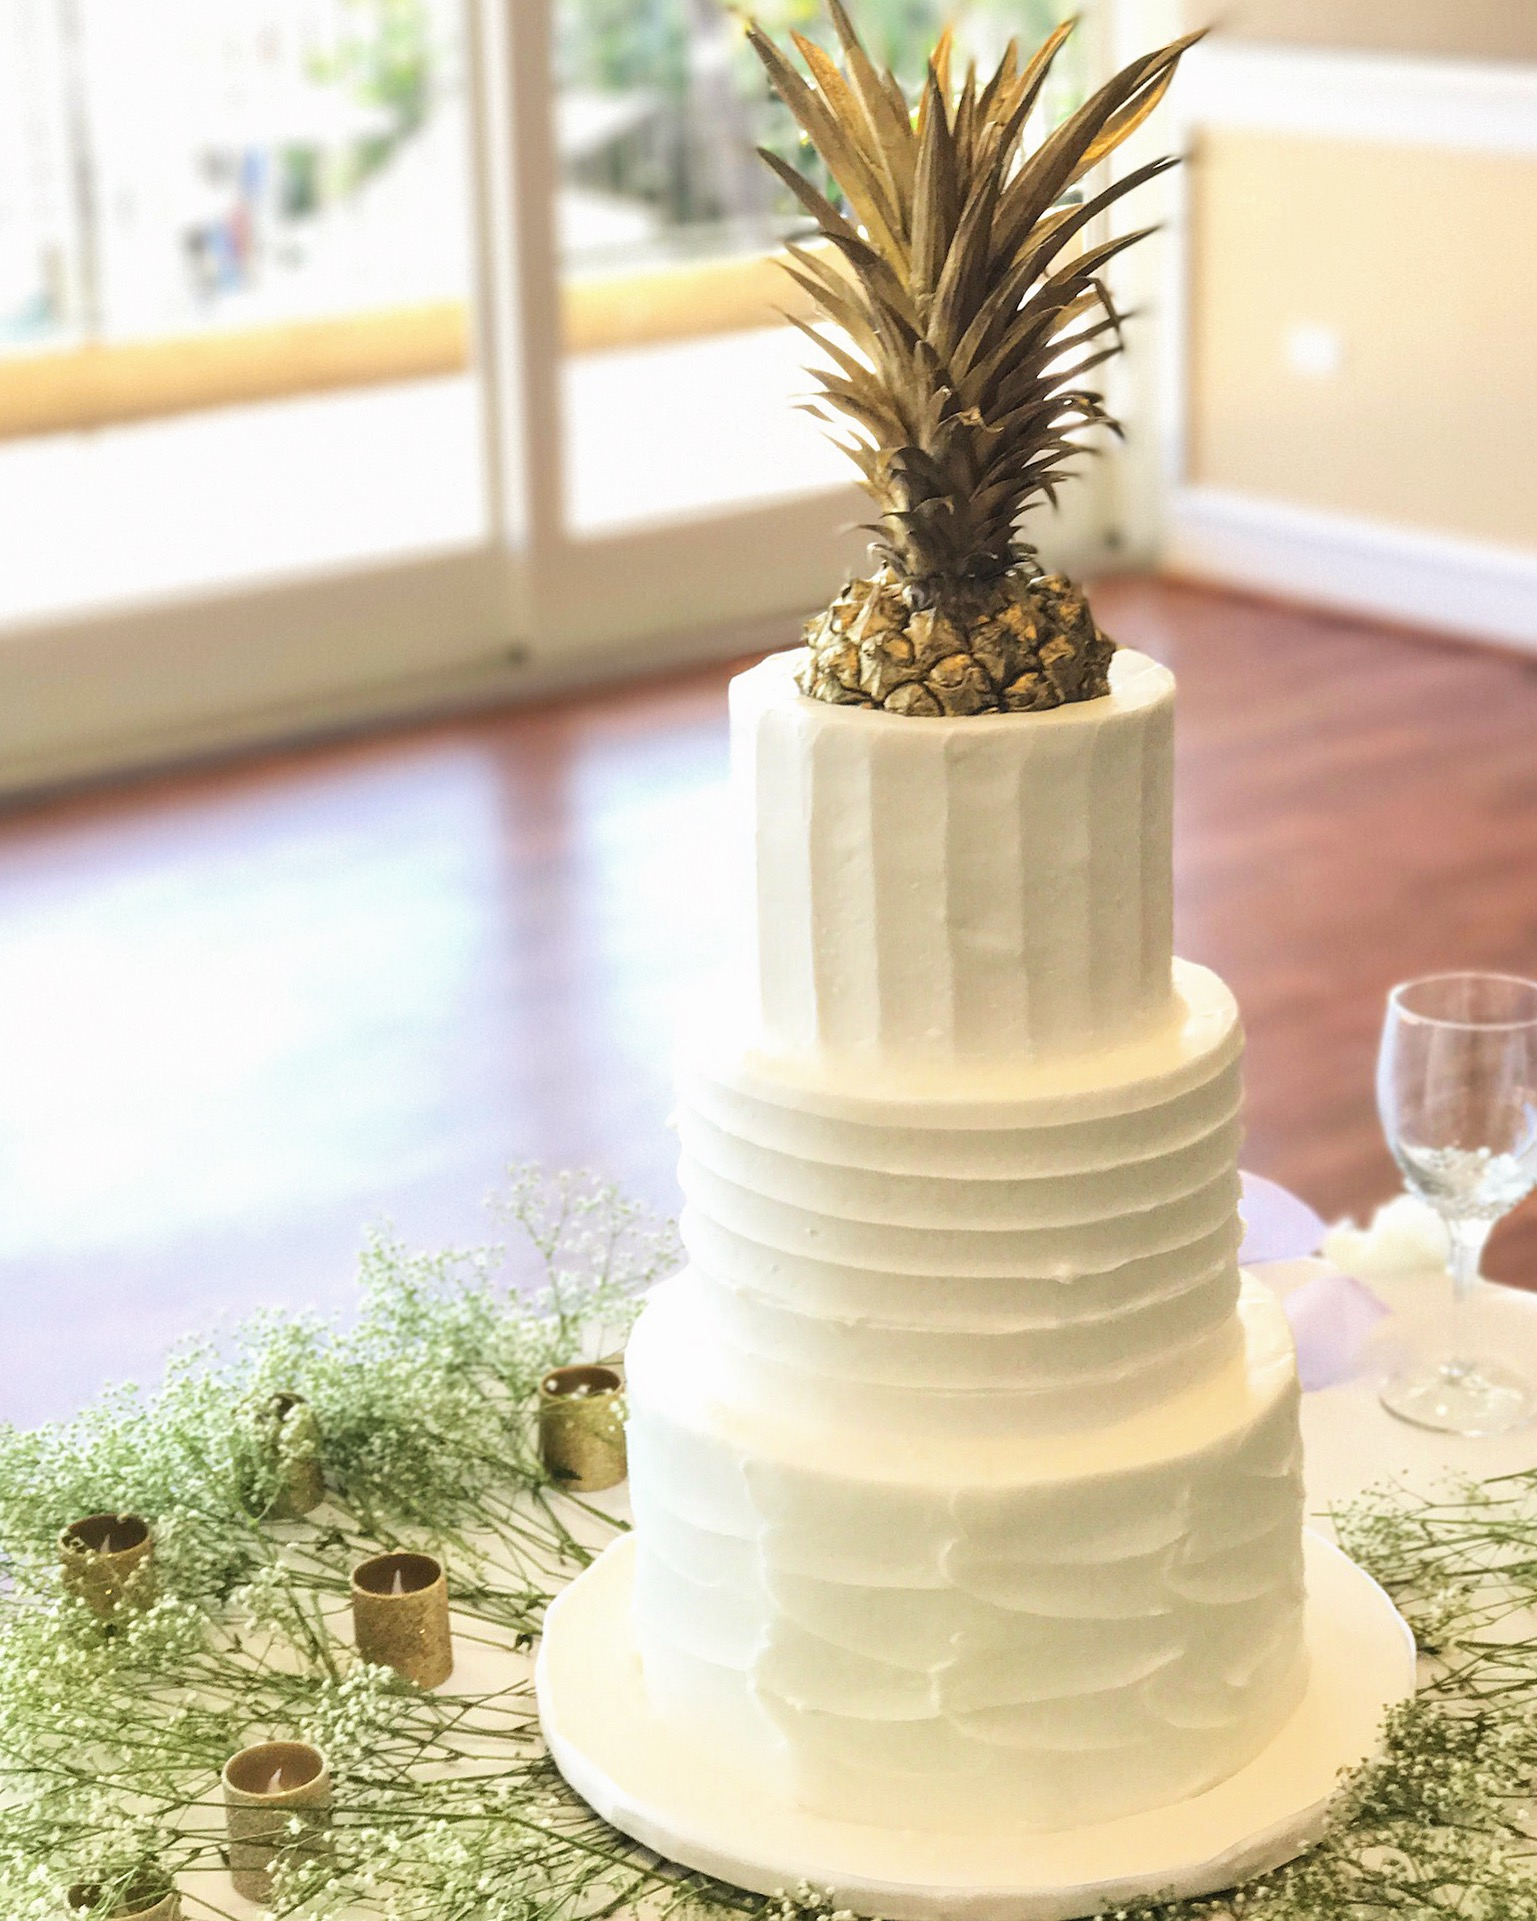 Hawaiian Pineapple Wedding Cake - Pineapple Wedding Cake